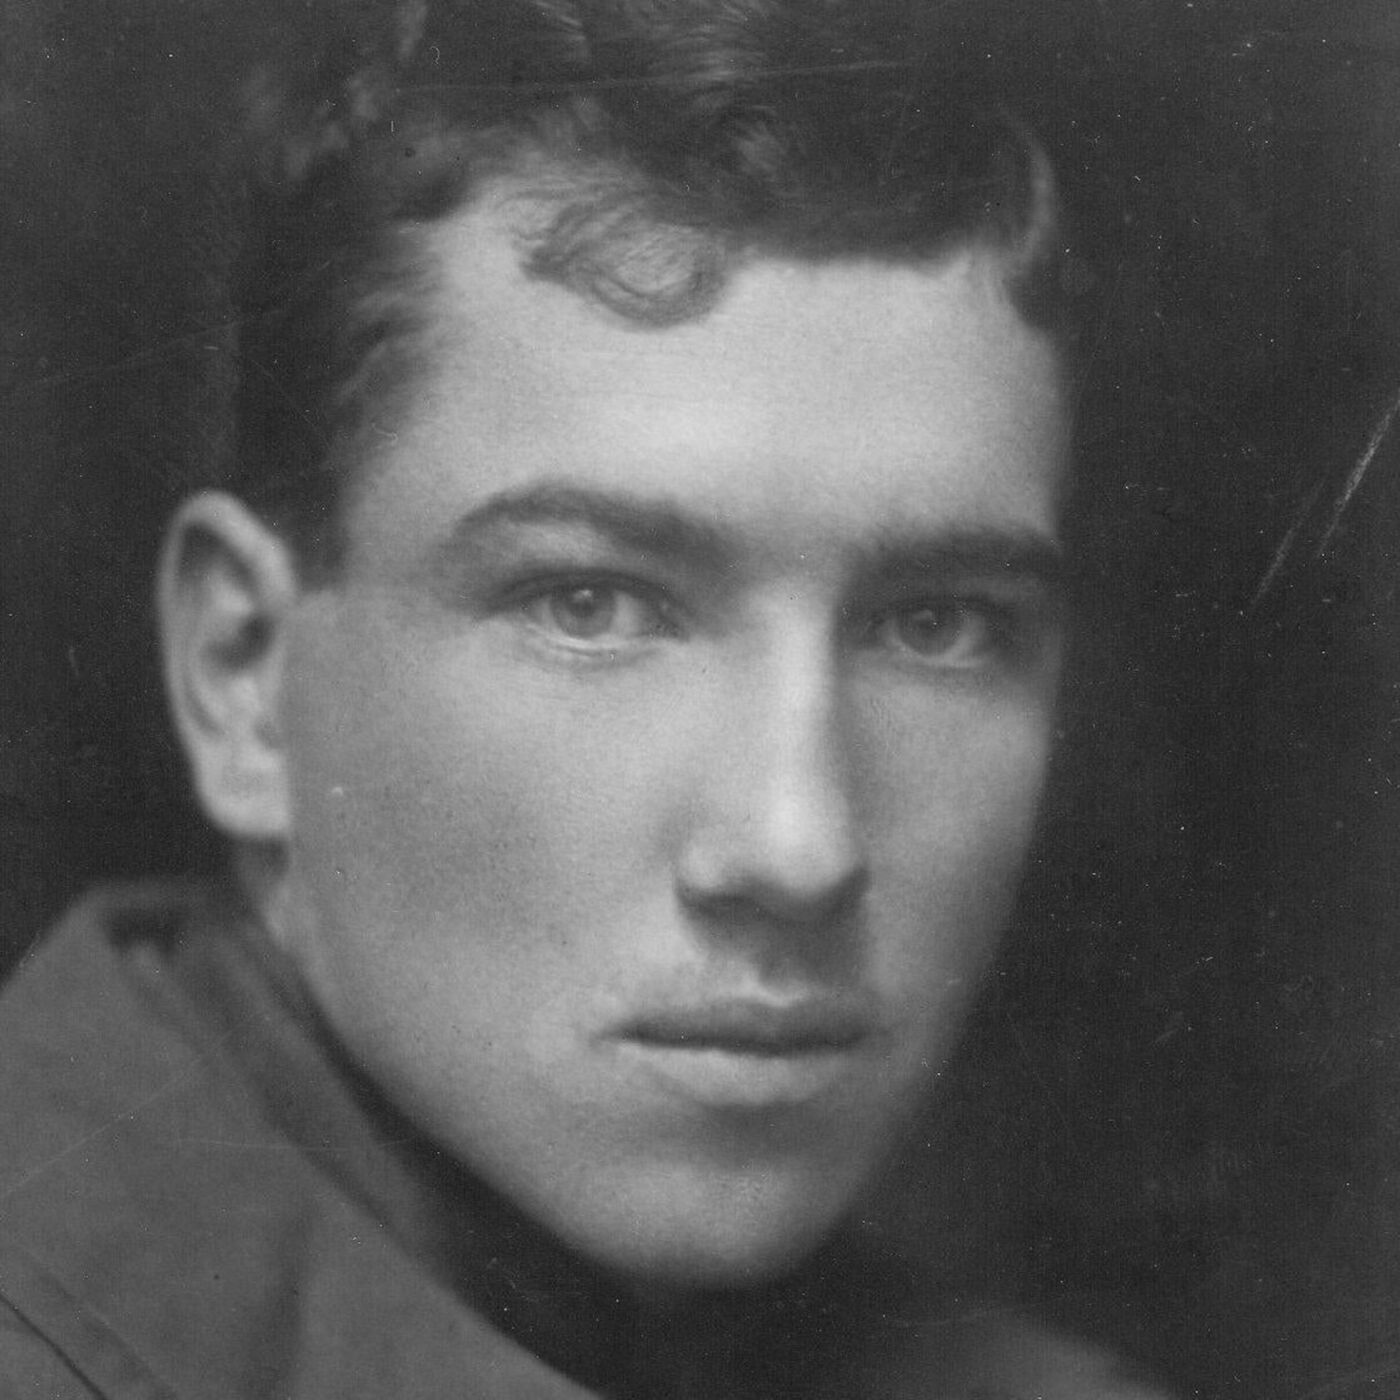 Robert Graves Dead Cow Farm The Cool Web A Childs Nightmare